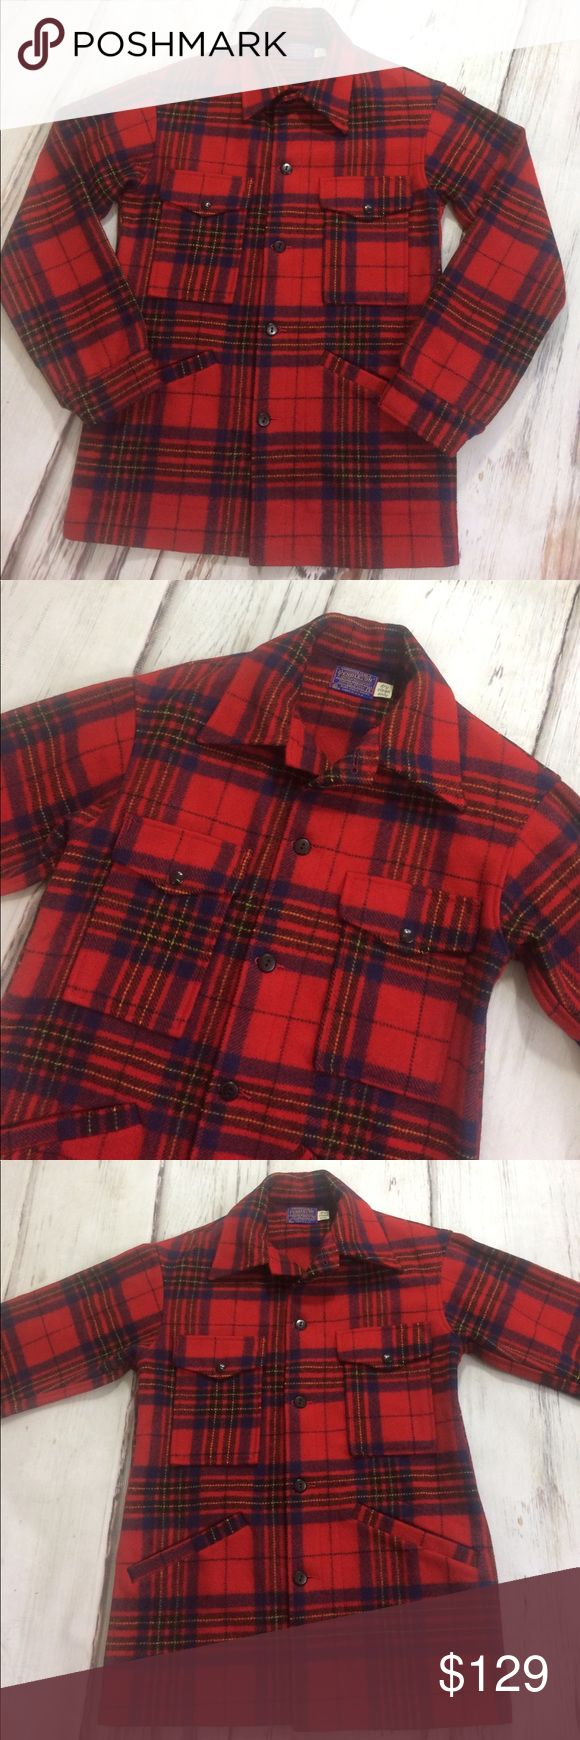 """Pendleton Men's Vintage Hunting Coat Red Plaid Mint Condition! This vintage coat is nearly immaculate.  Vibrant red with blue, black, and yellow plaid. The only signs of wear are rubbing on pocket snaps and buttons. It is unlined. 100% wool. Made in the USA. 2 snap front pockets on chest and two other slant pockets at waist. Armpit to armpit 20.5"""". Underarm length 21"""". Length is 30"""" from base of collar to bottom hem. Pendleton Jackets & Coats"""